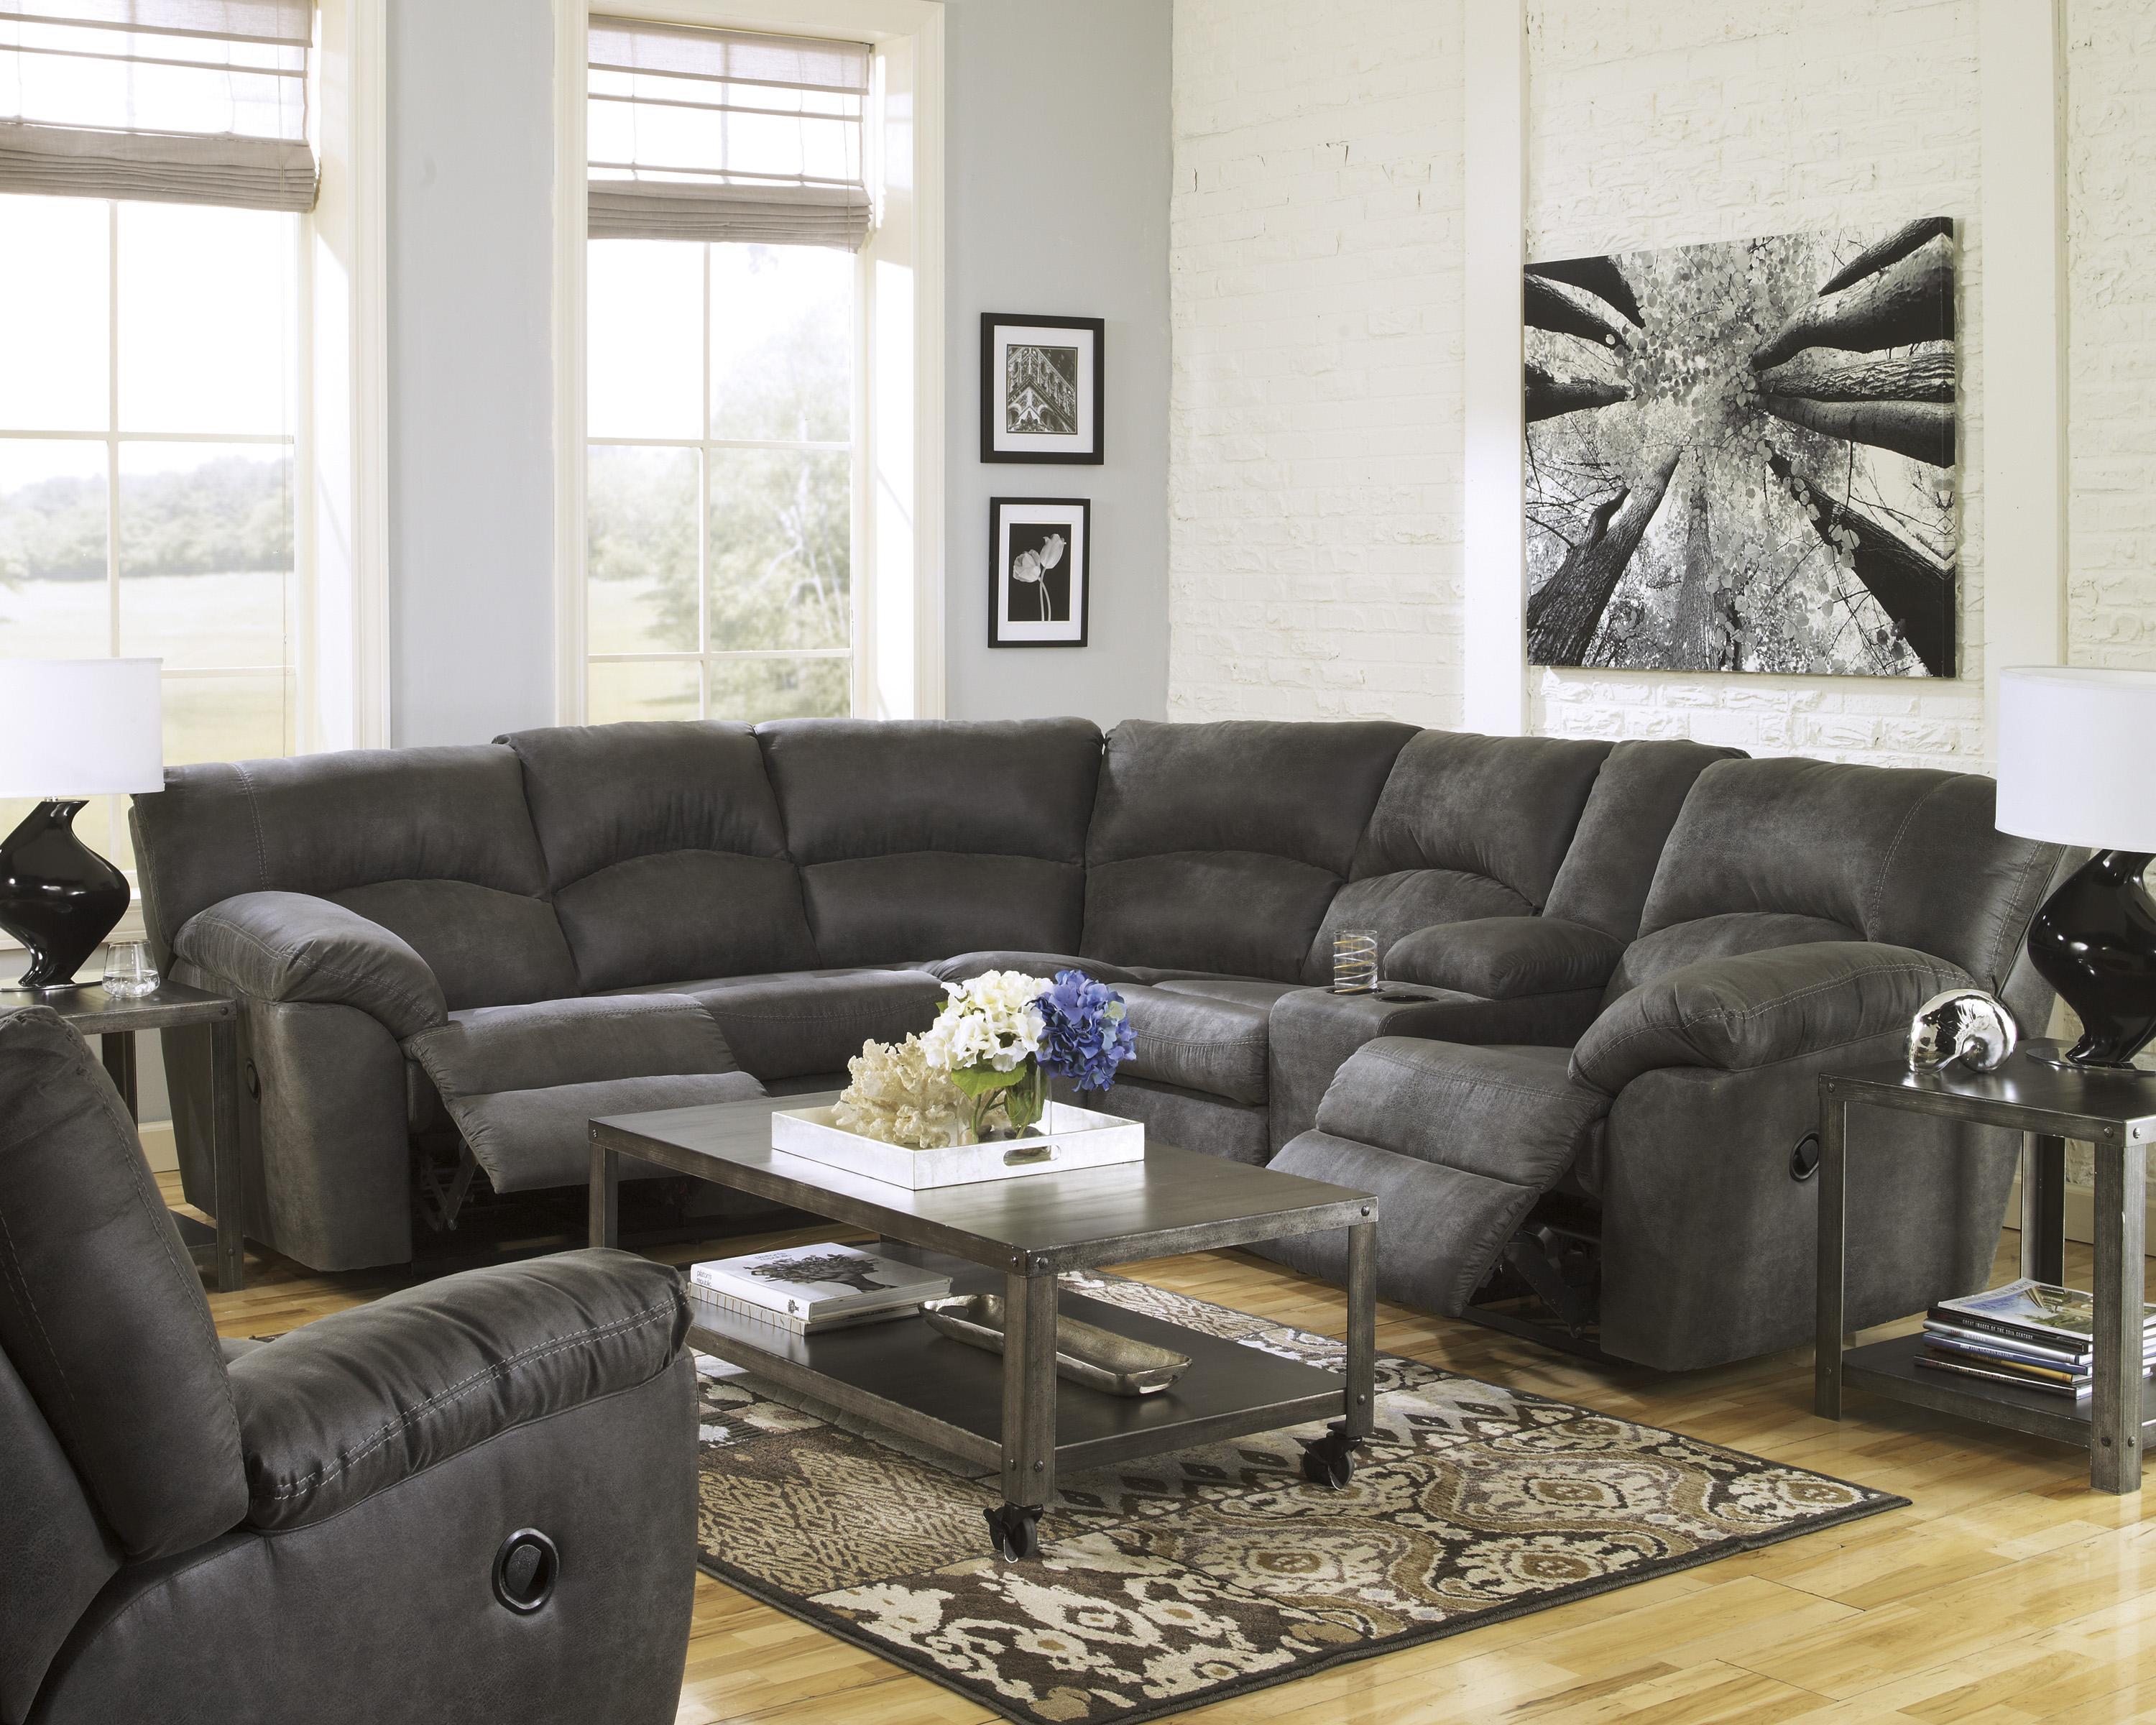 Signature Design by Ashley Tambo - Pewter 2-Piece Reclining Corner Sectional with Center Console - Wayside Furniture - Reclining Sectional Sofas : grey reclining sectional sofa - Sectionals, Sofas & Couches